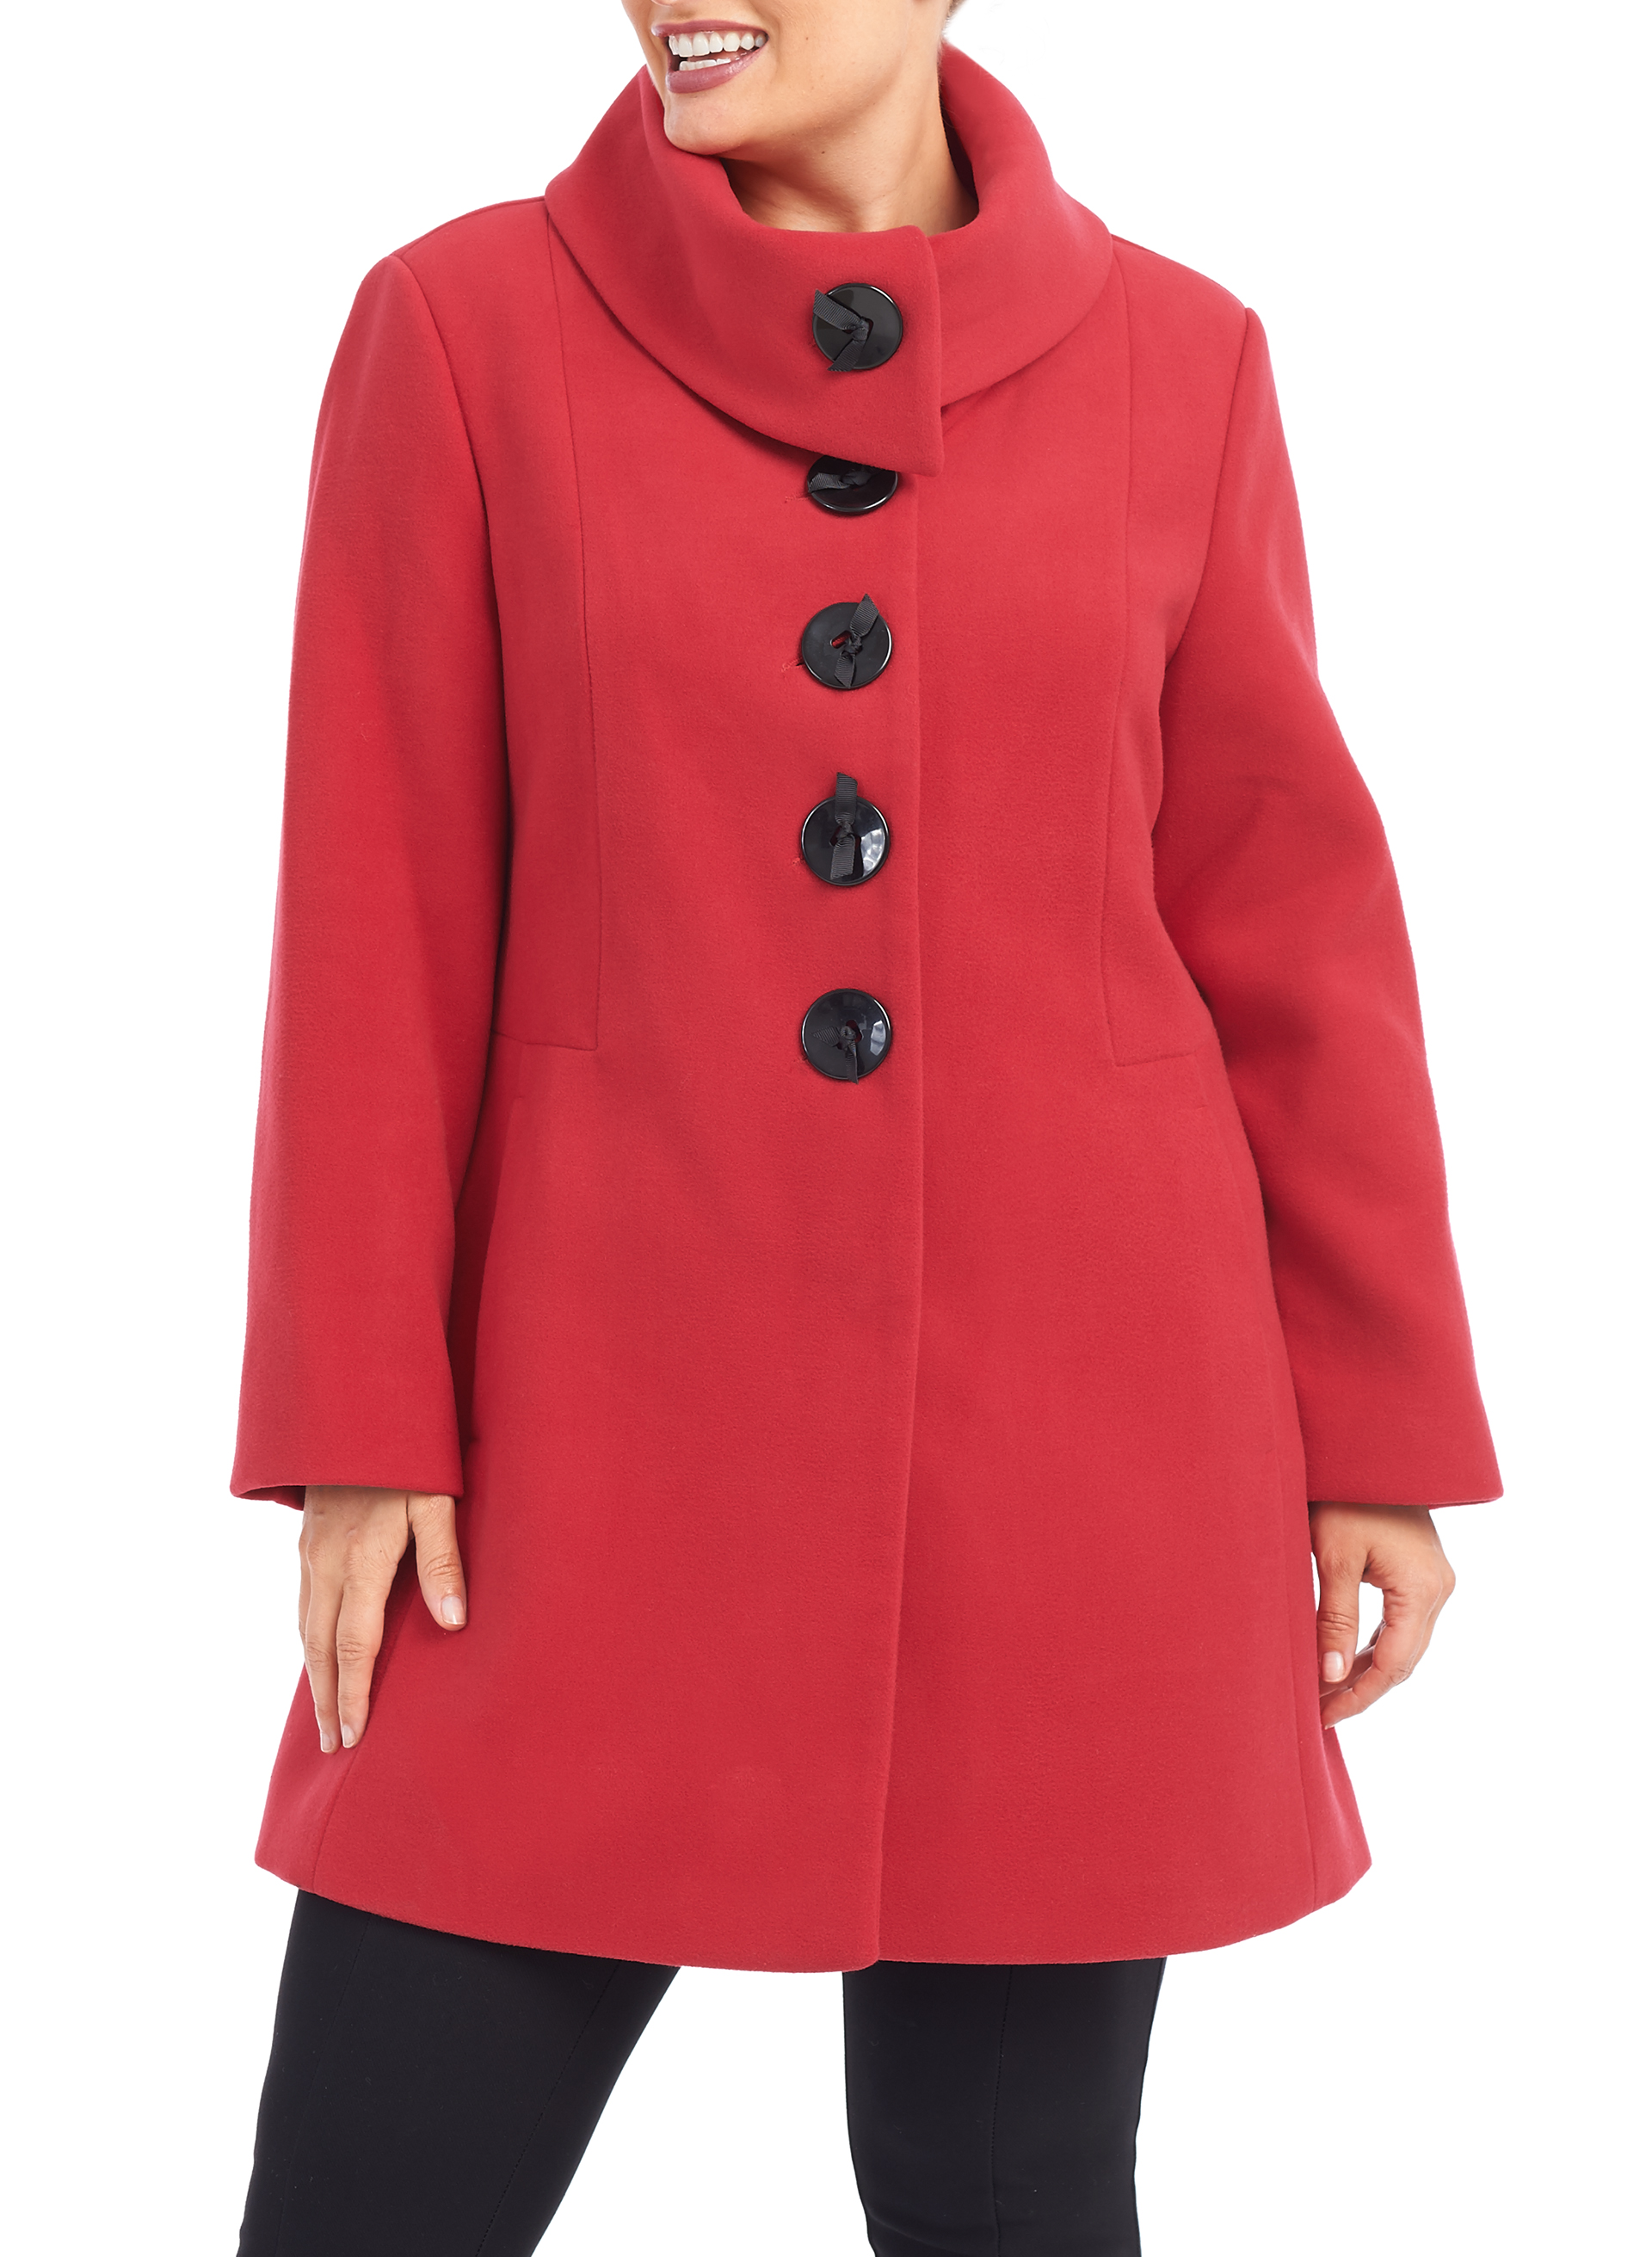 Marcona Wool-Like Coat , Red, hi-res